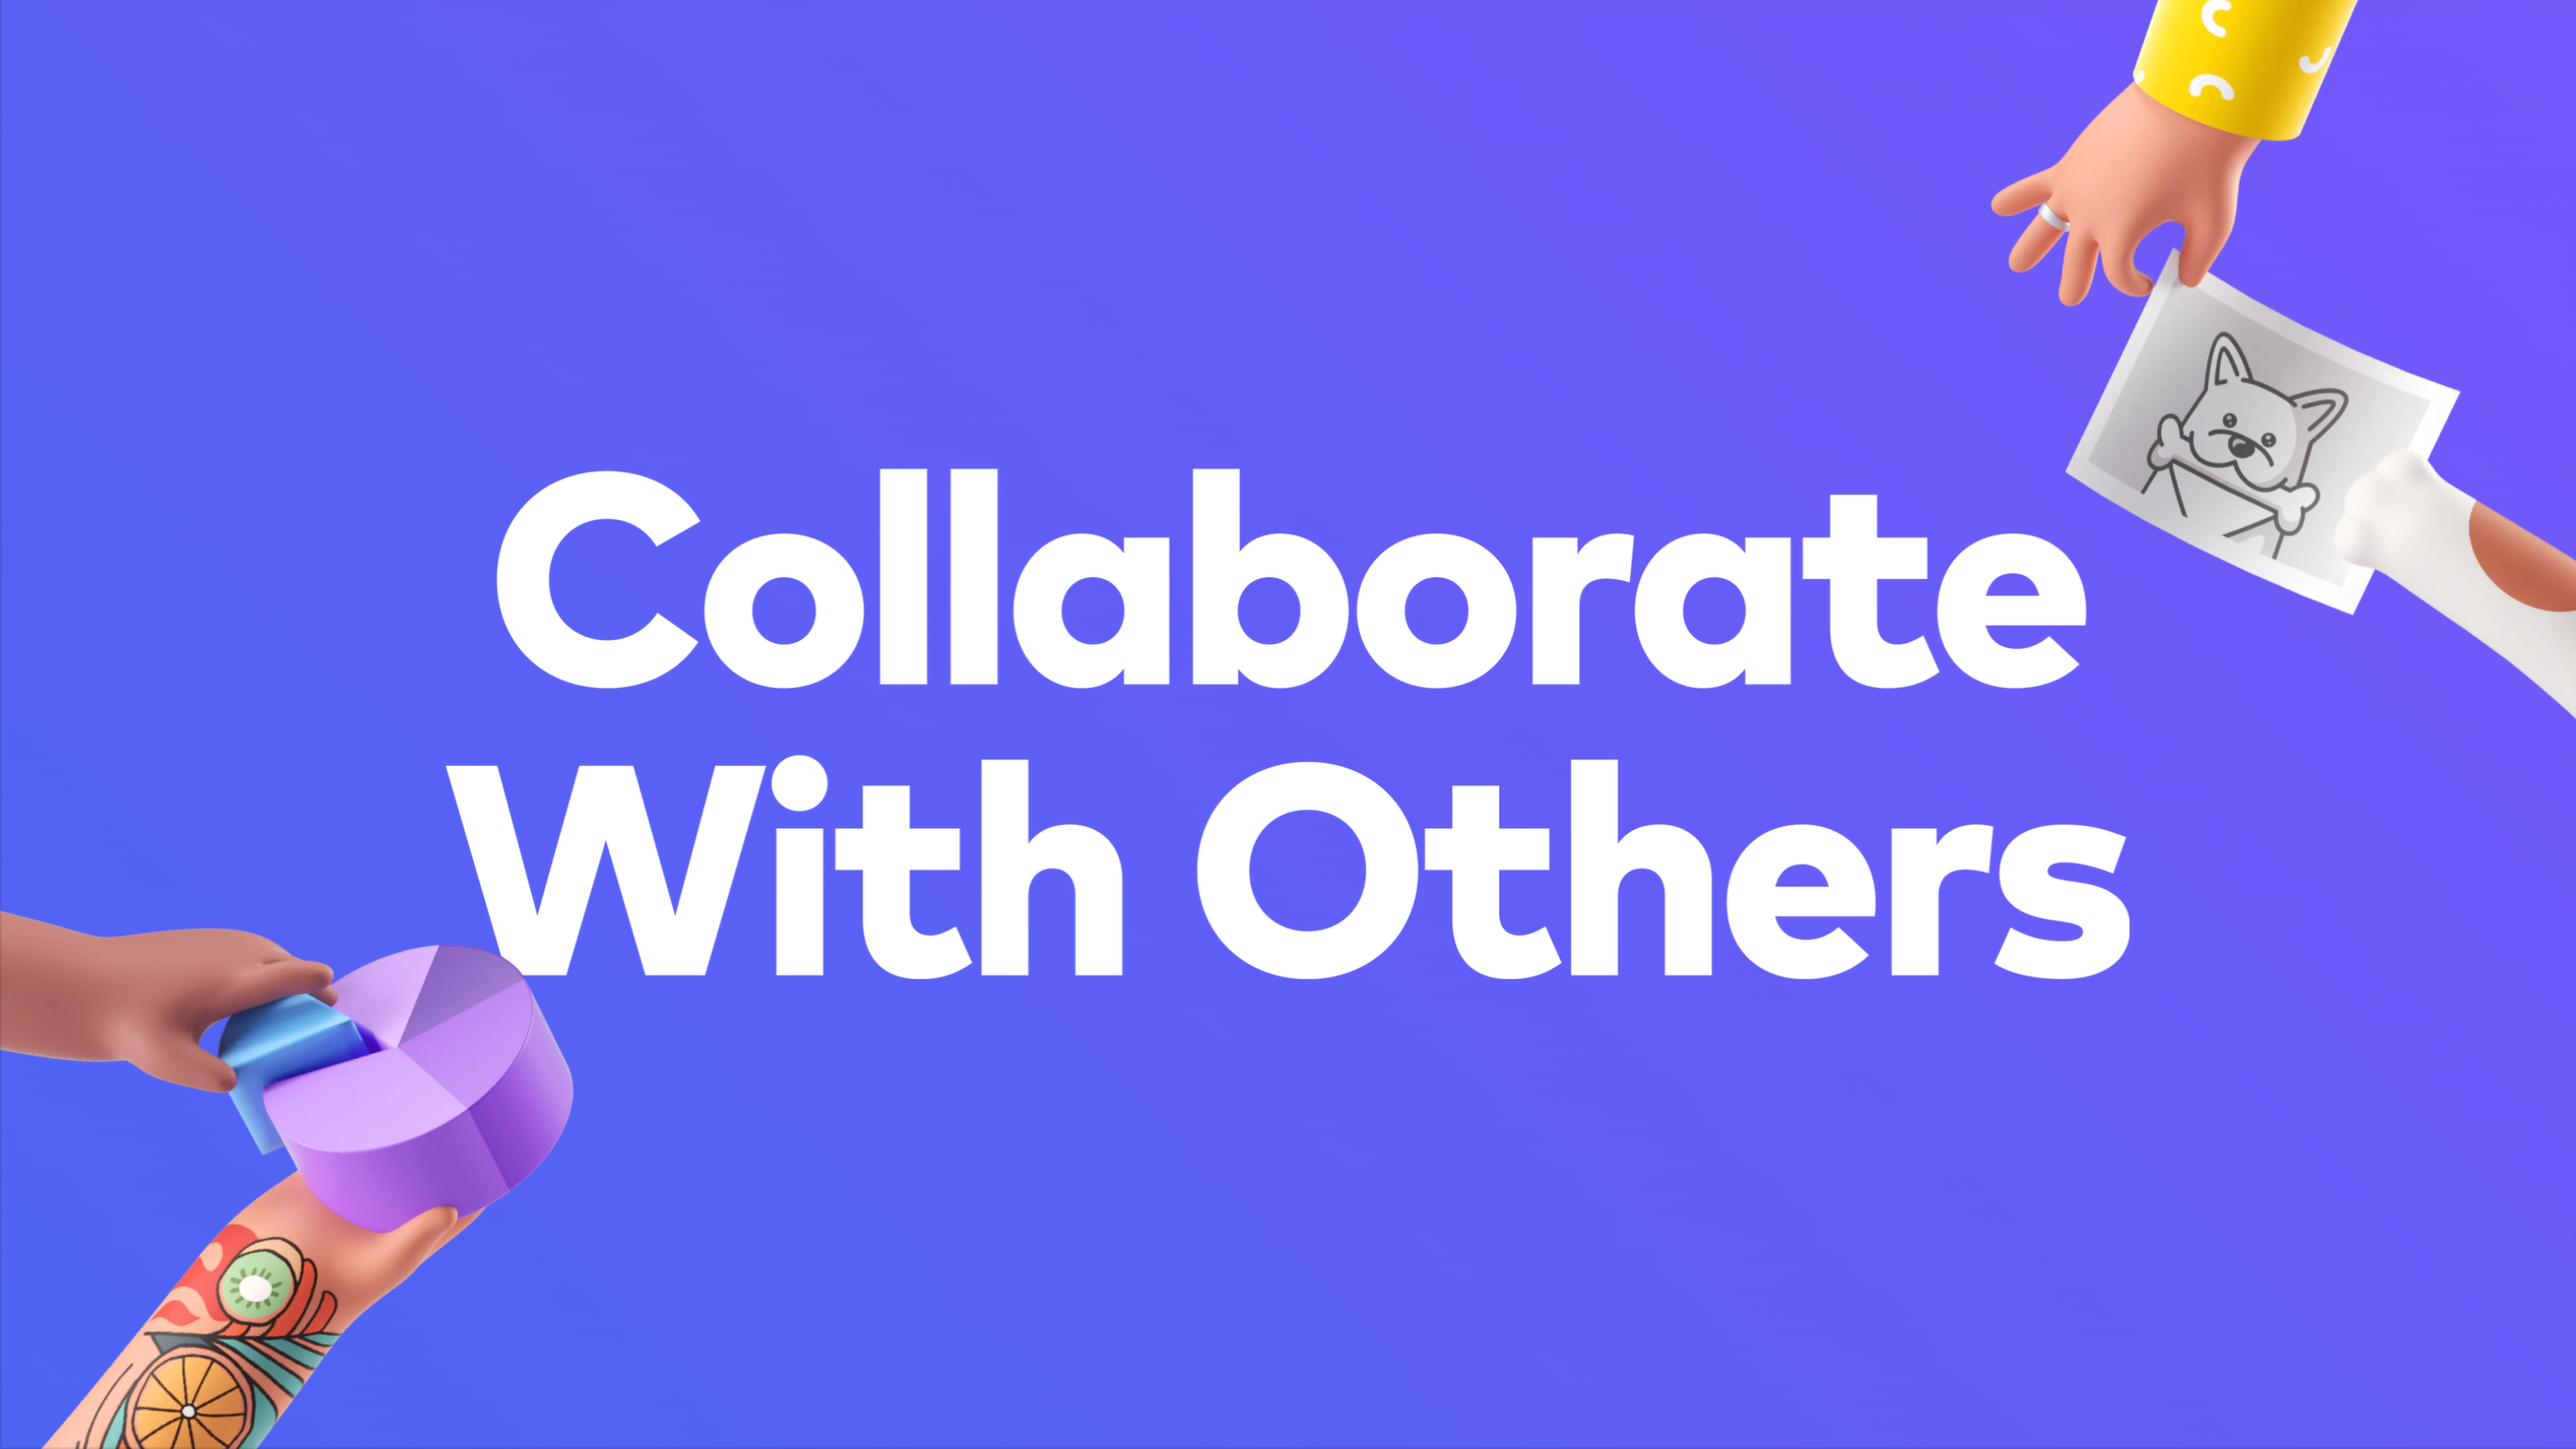 Collaborate With Others